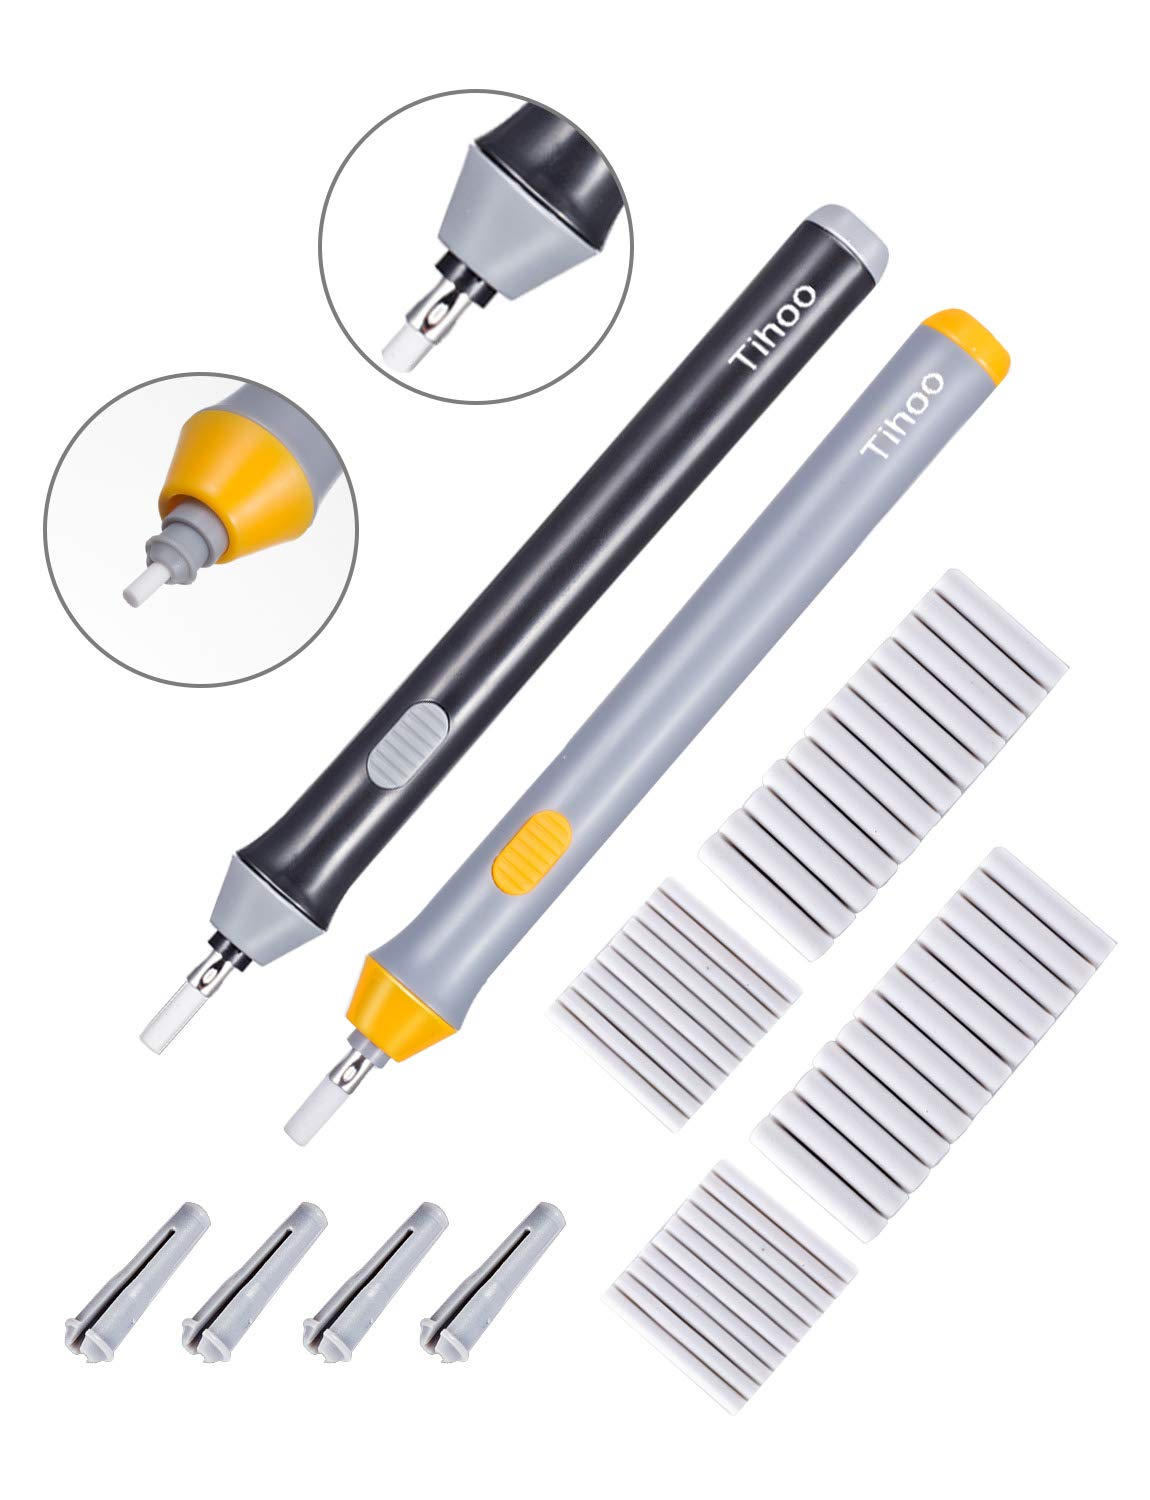 2Set Electric Erasers kit With 44 Eraser Refills Art Erasers for Highlight Auto Eraser For Pencil Drawing Powered by 2 AAA Batteries (not included) Black & Gray